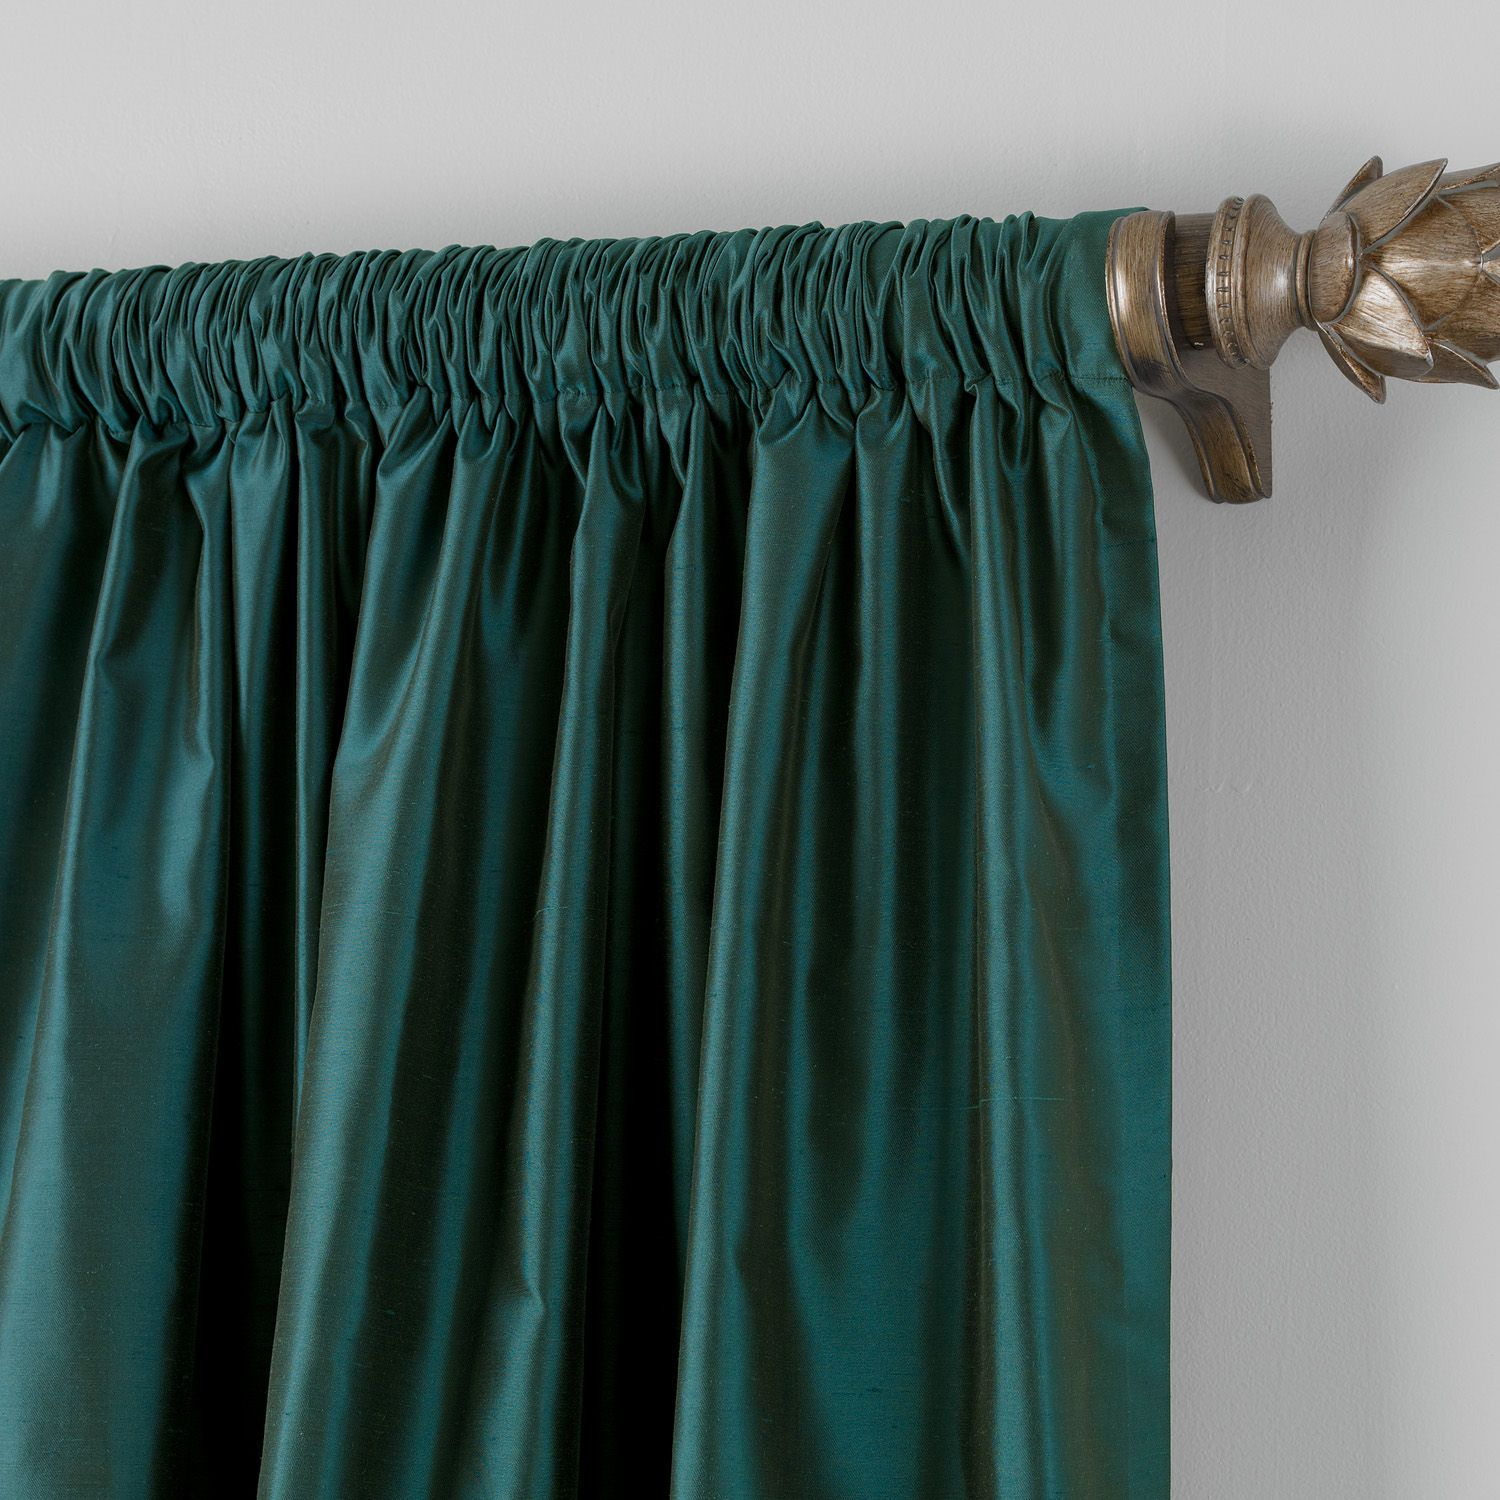 Teal satin dupioni rodpocket panel ethan allen us for the home